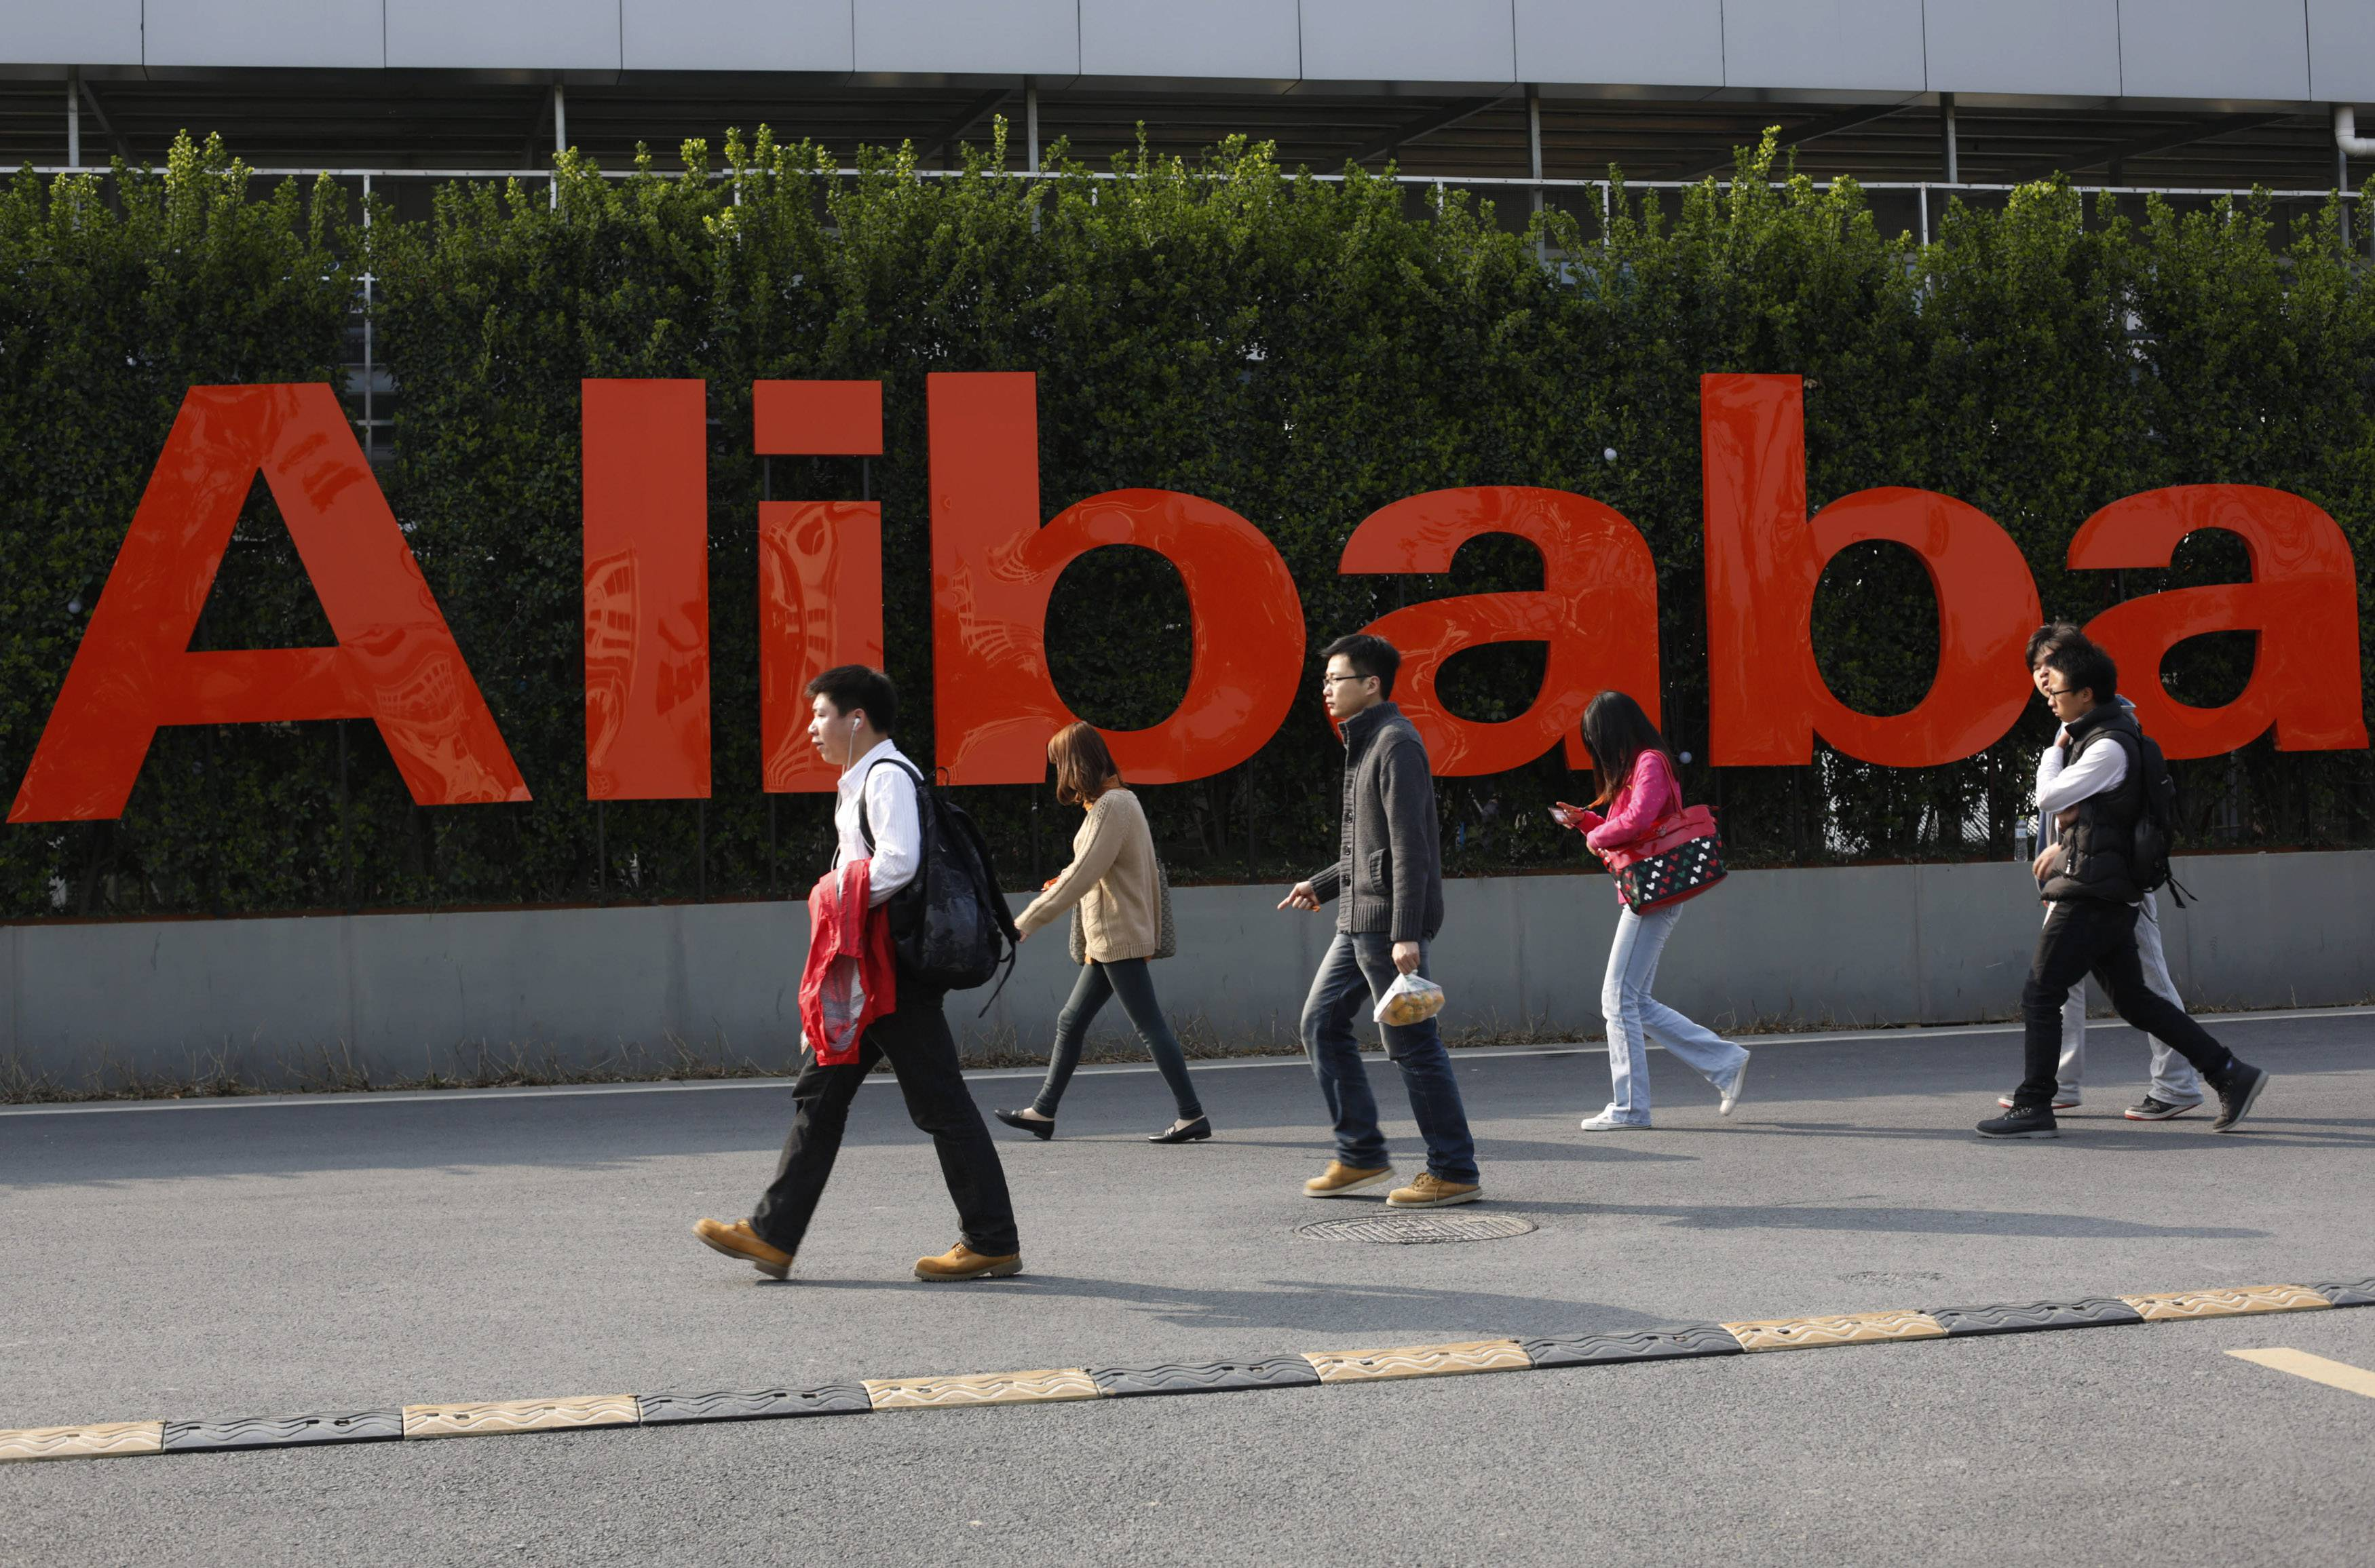 Alibaba's quarterly revenue growth has slipped to its slowest pace in six years, a development that could dampen demand to invest in the Chinese e-commerce company's upcoming stock offering.